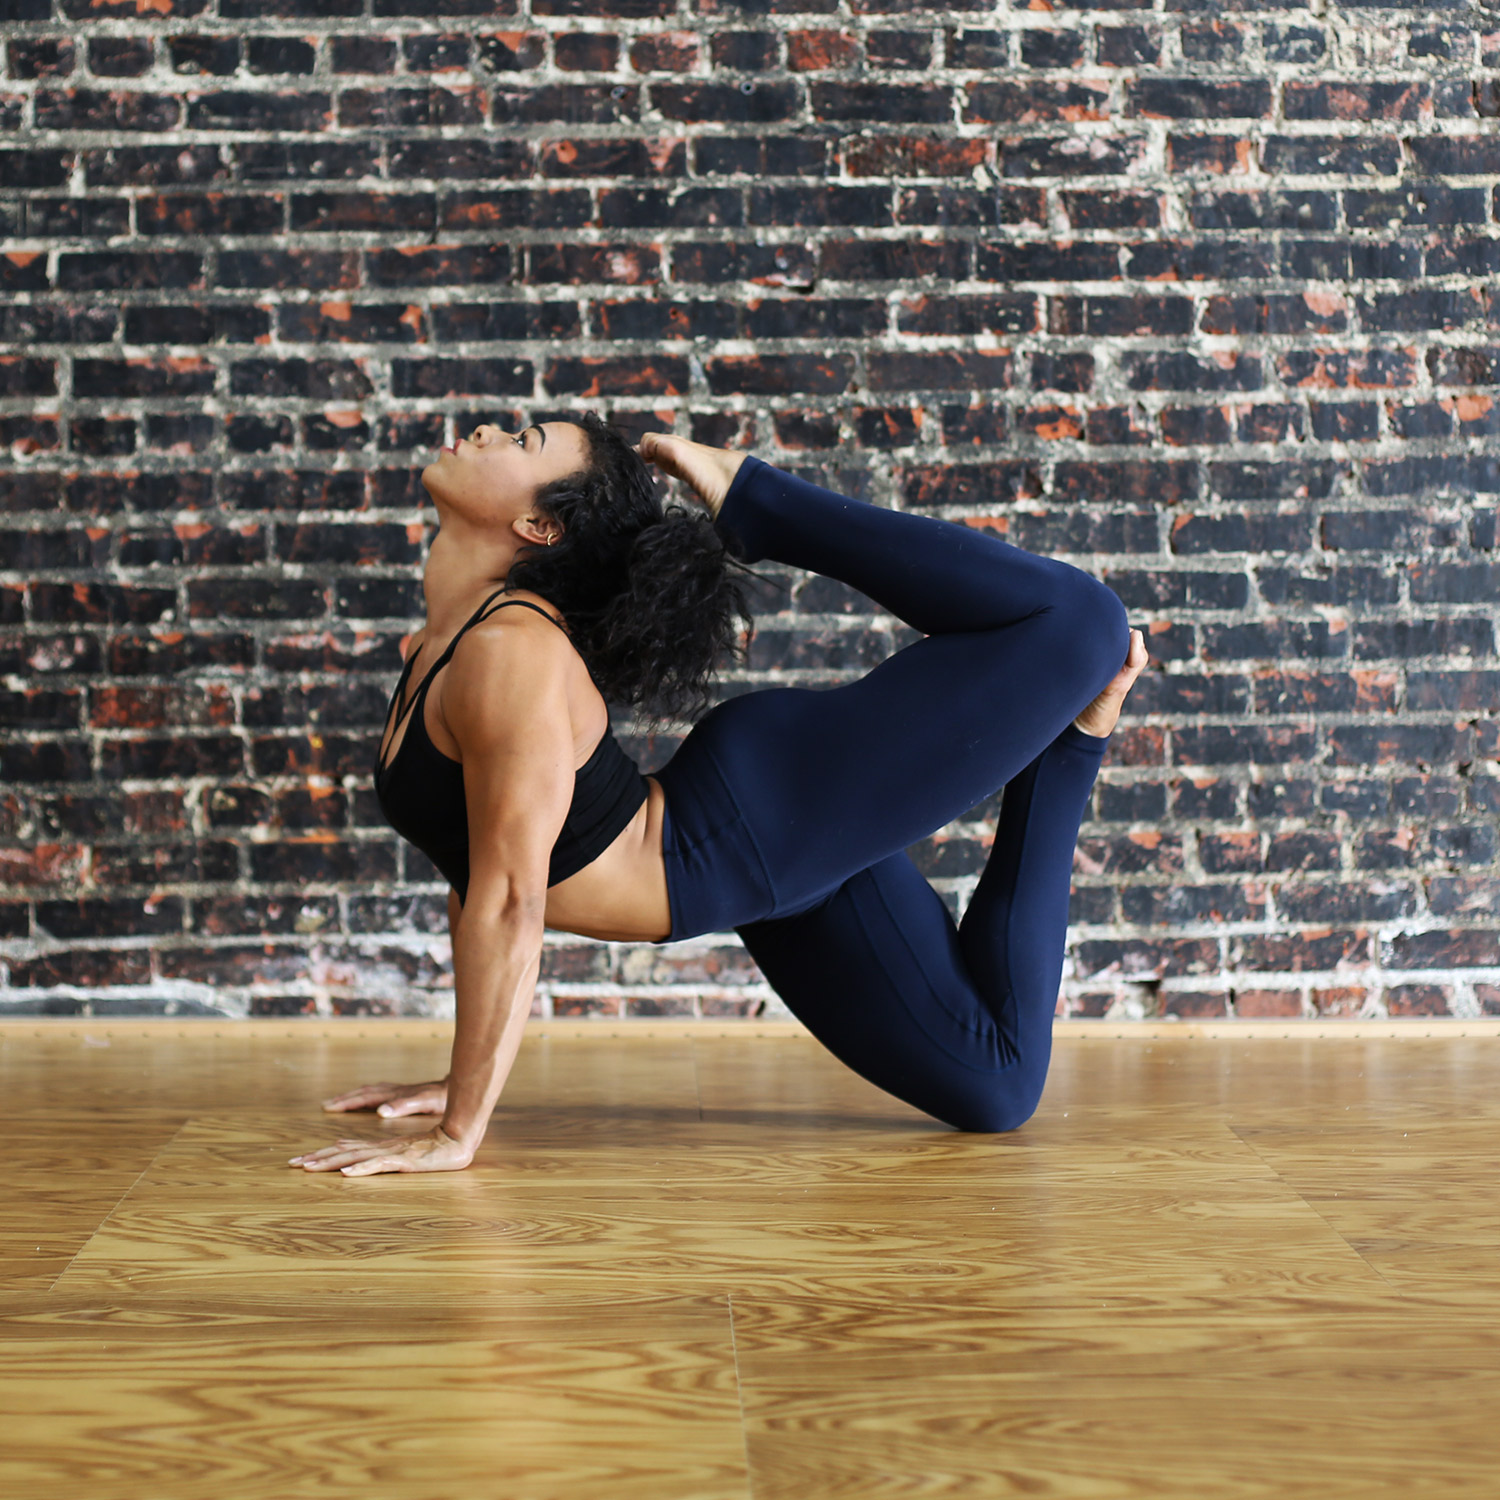 Lexi Powell Fit and Bendy Flexibility Instructor Brick Wall Wood Floor Contortion